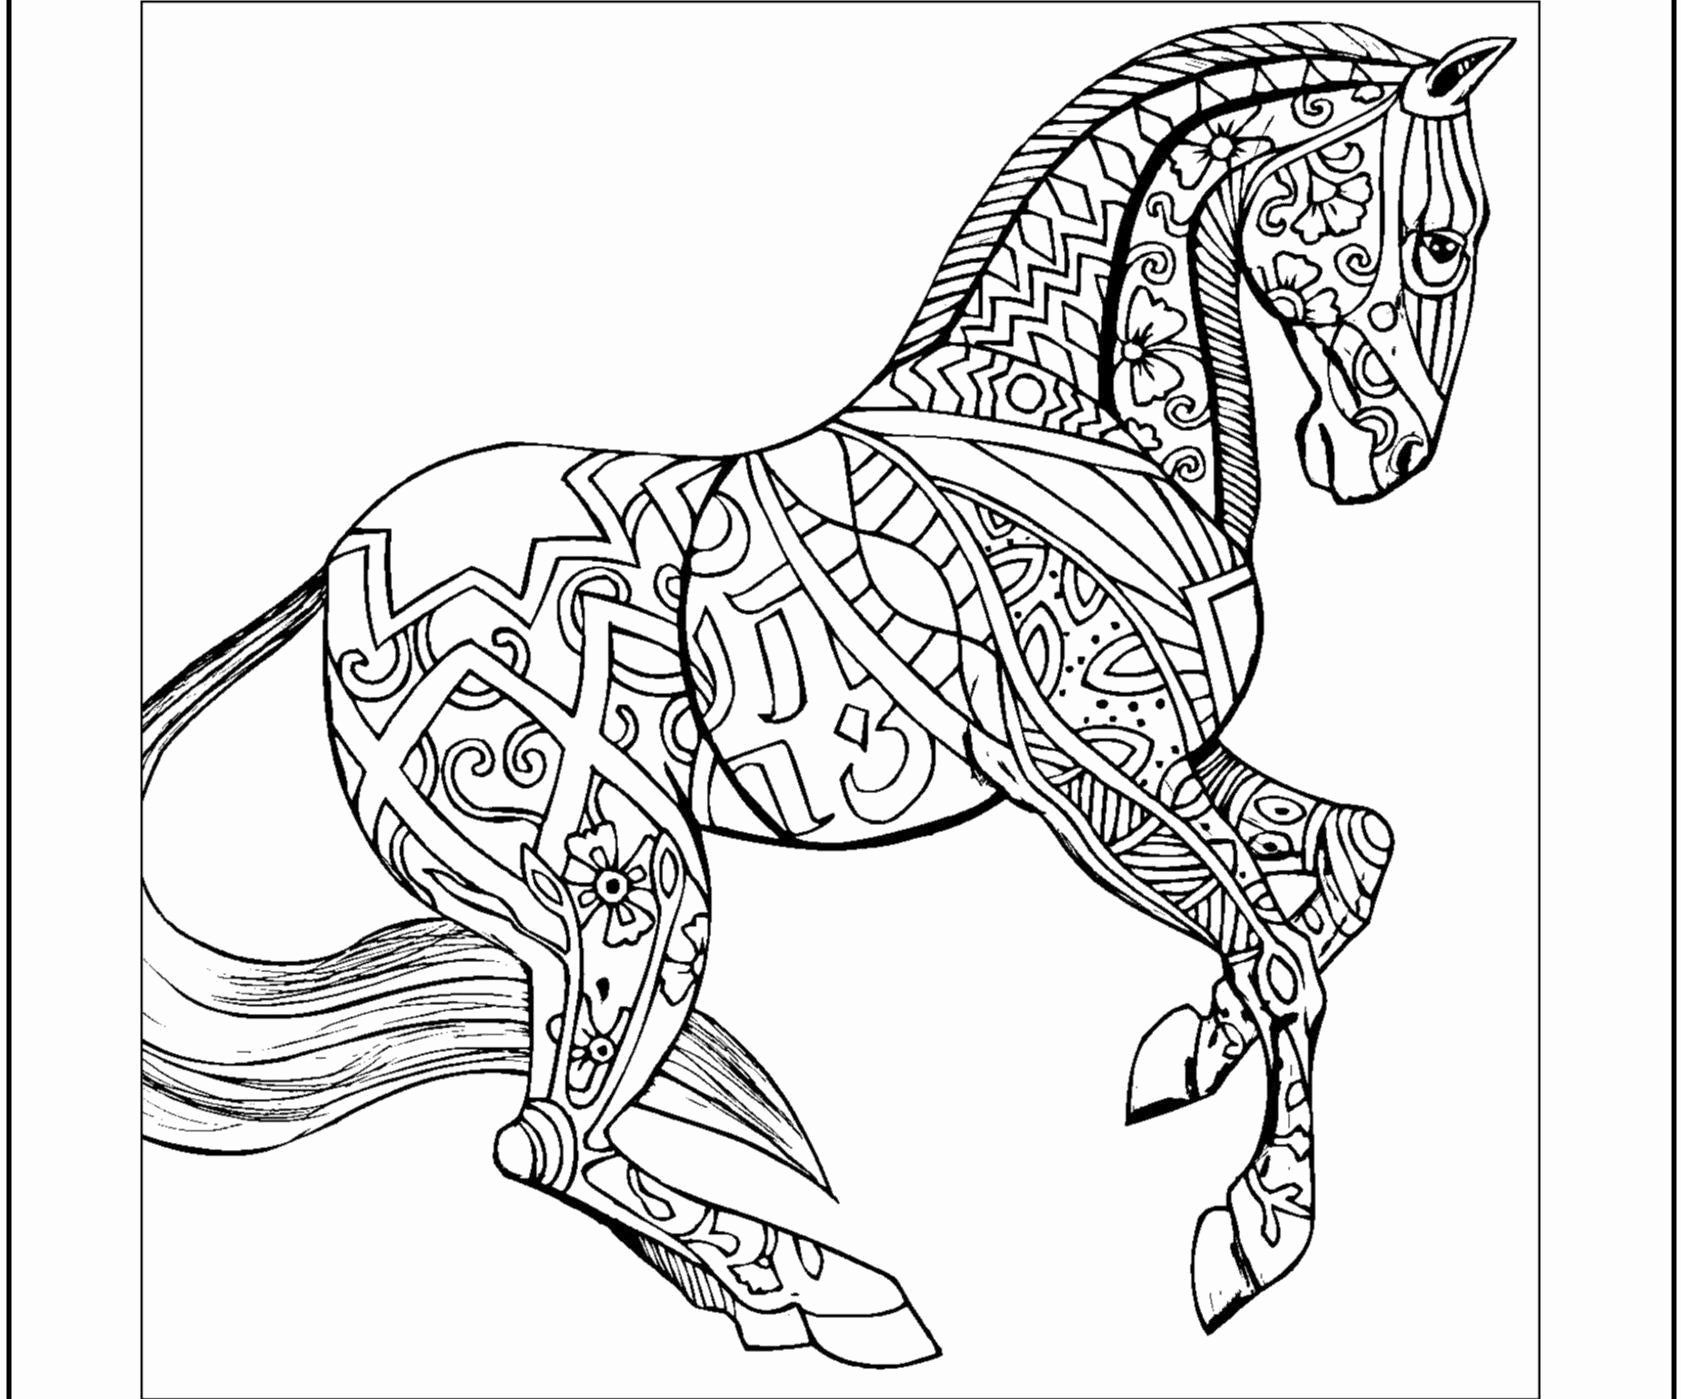 coloring pages of horses to print realistic horse coloring pages to download and print for free horses of pages coloring to print